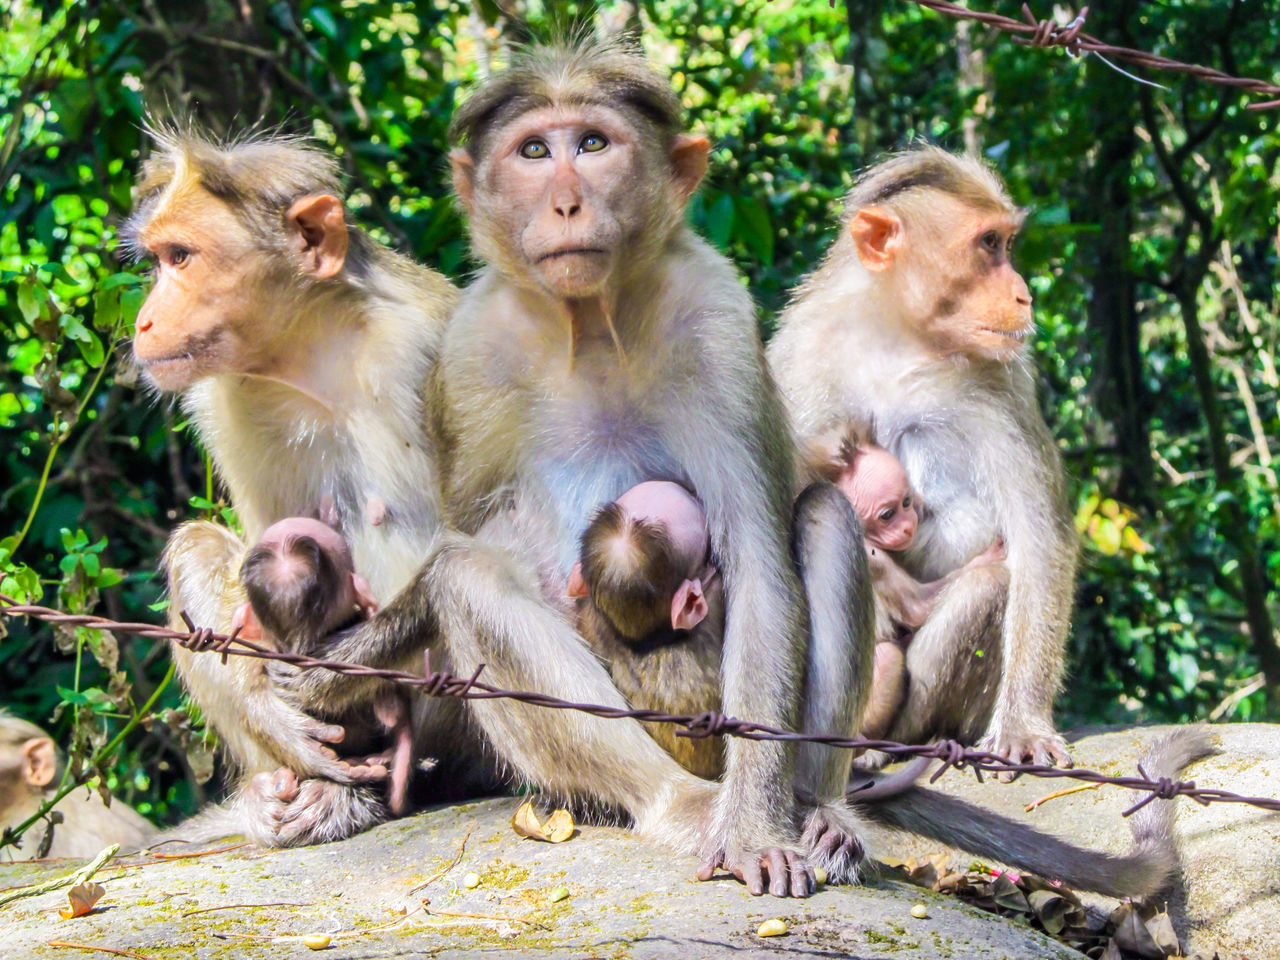 monkey, animal themes, primate, animals in the wild, young animal, animal family, animal wildlife, mammal, outdoors, infant, togetherness, day, sitting, nature, baboon, close-up, people